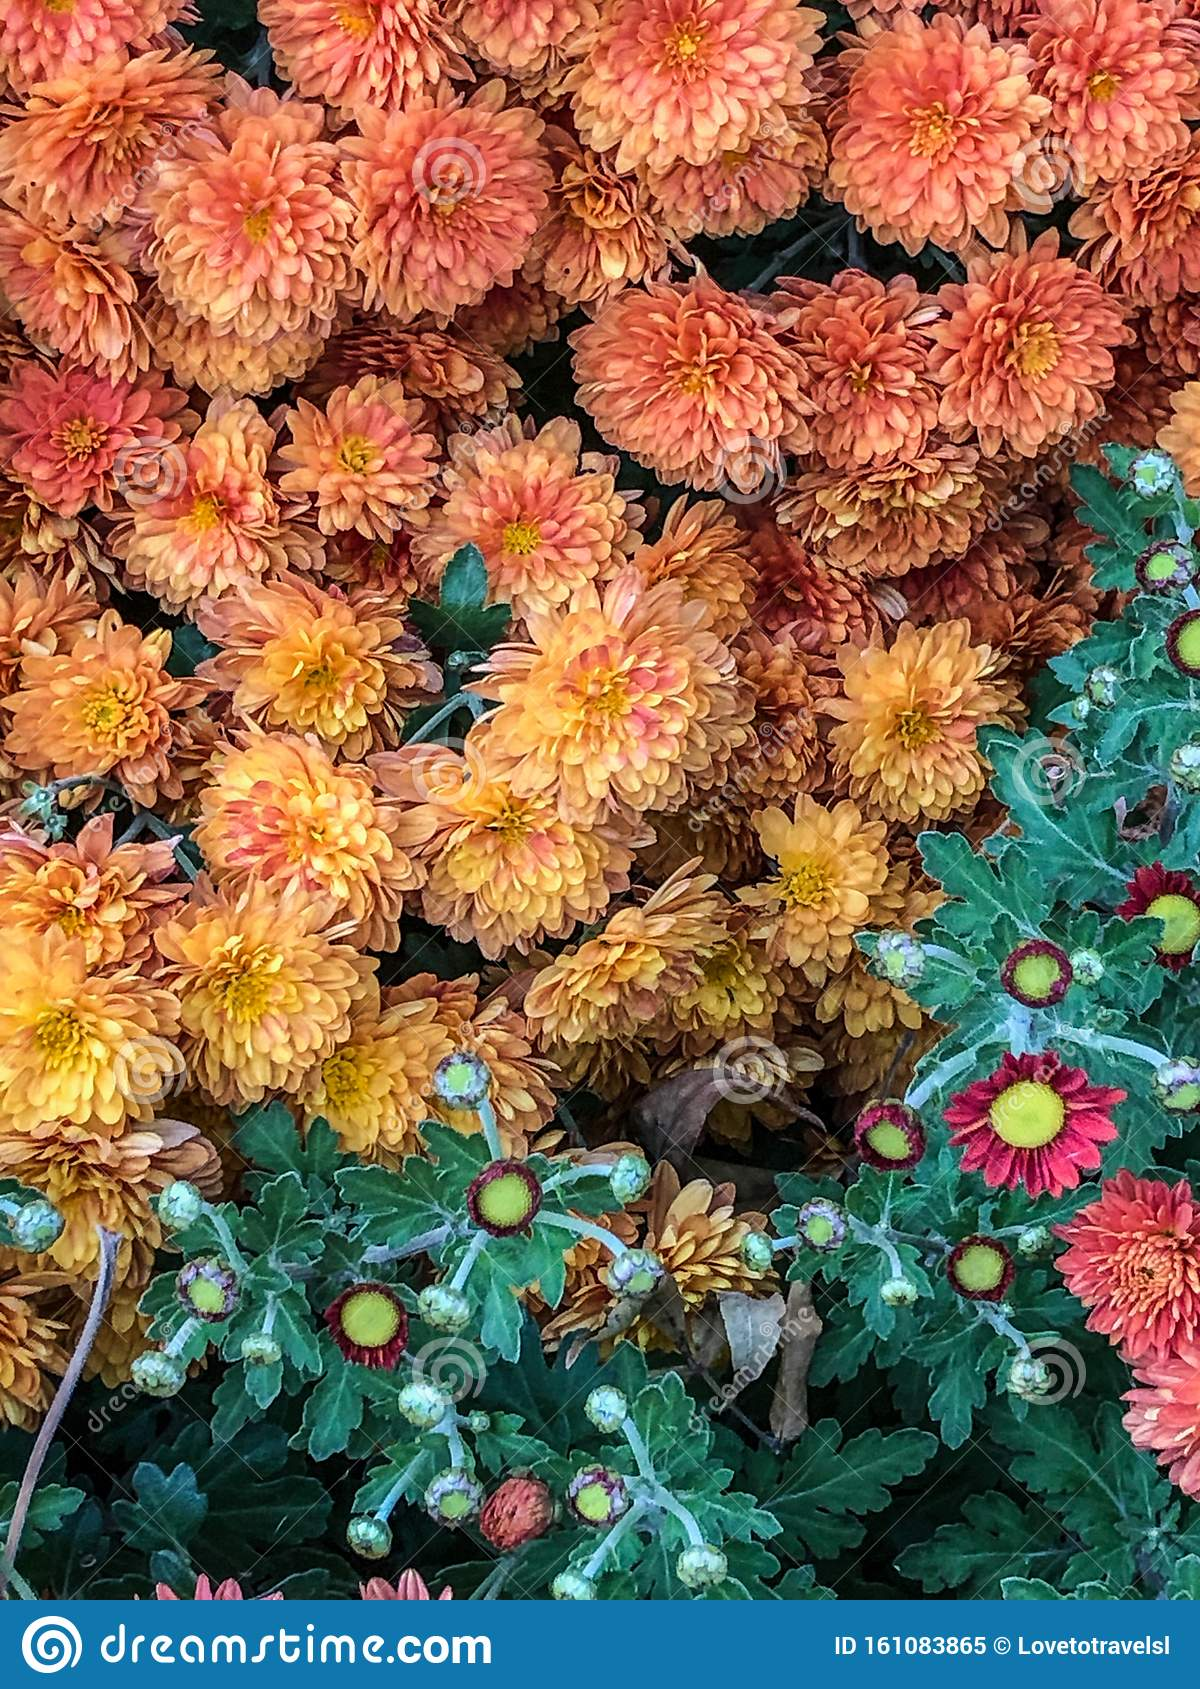 Colorful Fall Mum Flowers In Garden Stock Image Image Of Full Nature 161083865